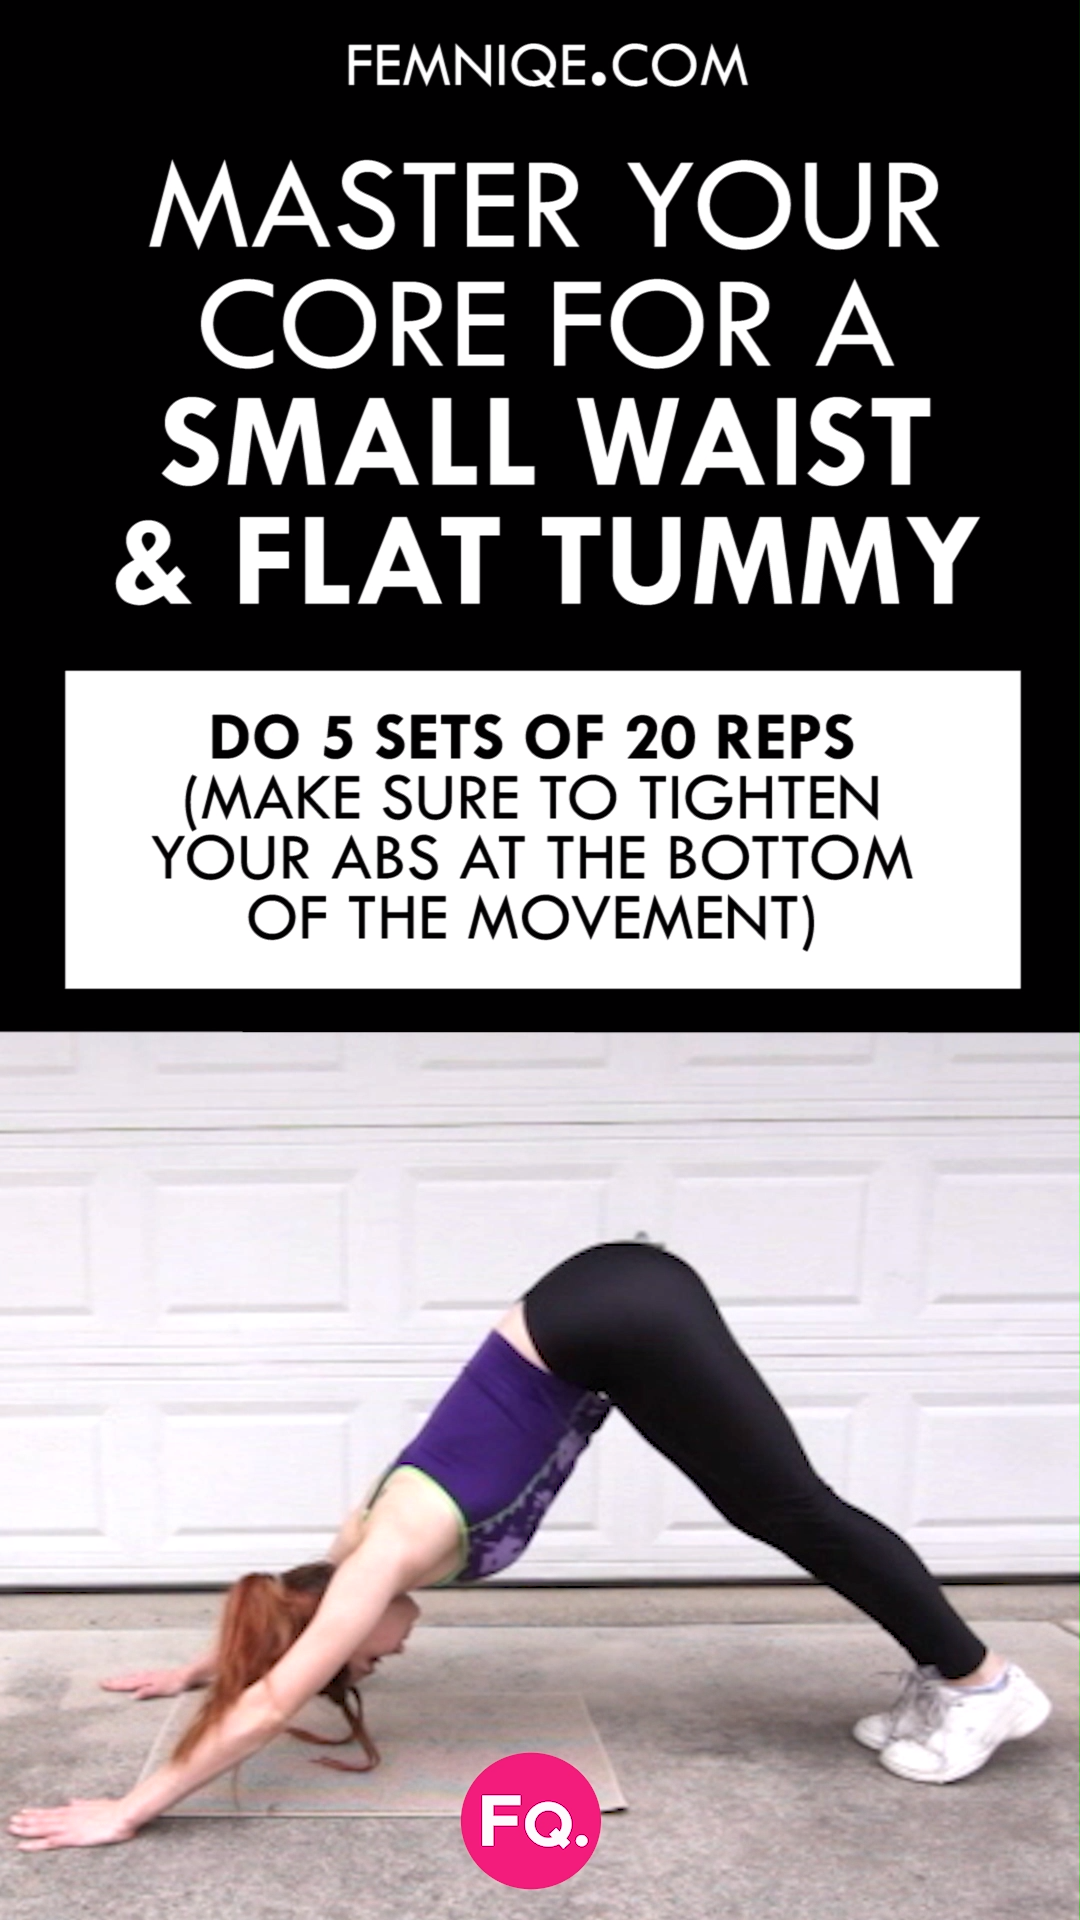 Do This Core Workout To Get The Flattest Tummy Ever! (Just 4 Exercises)